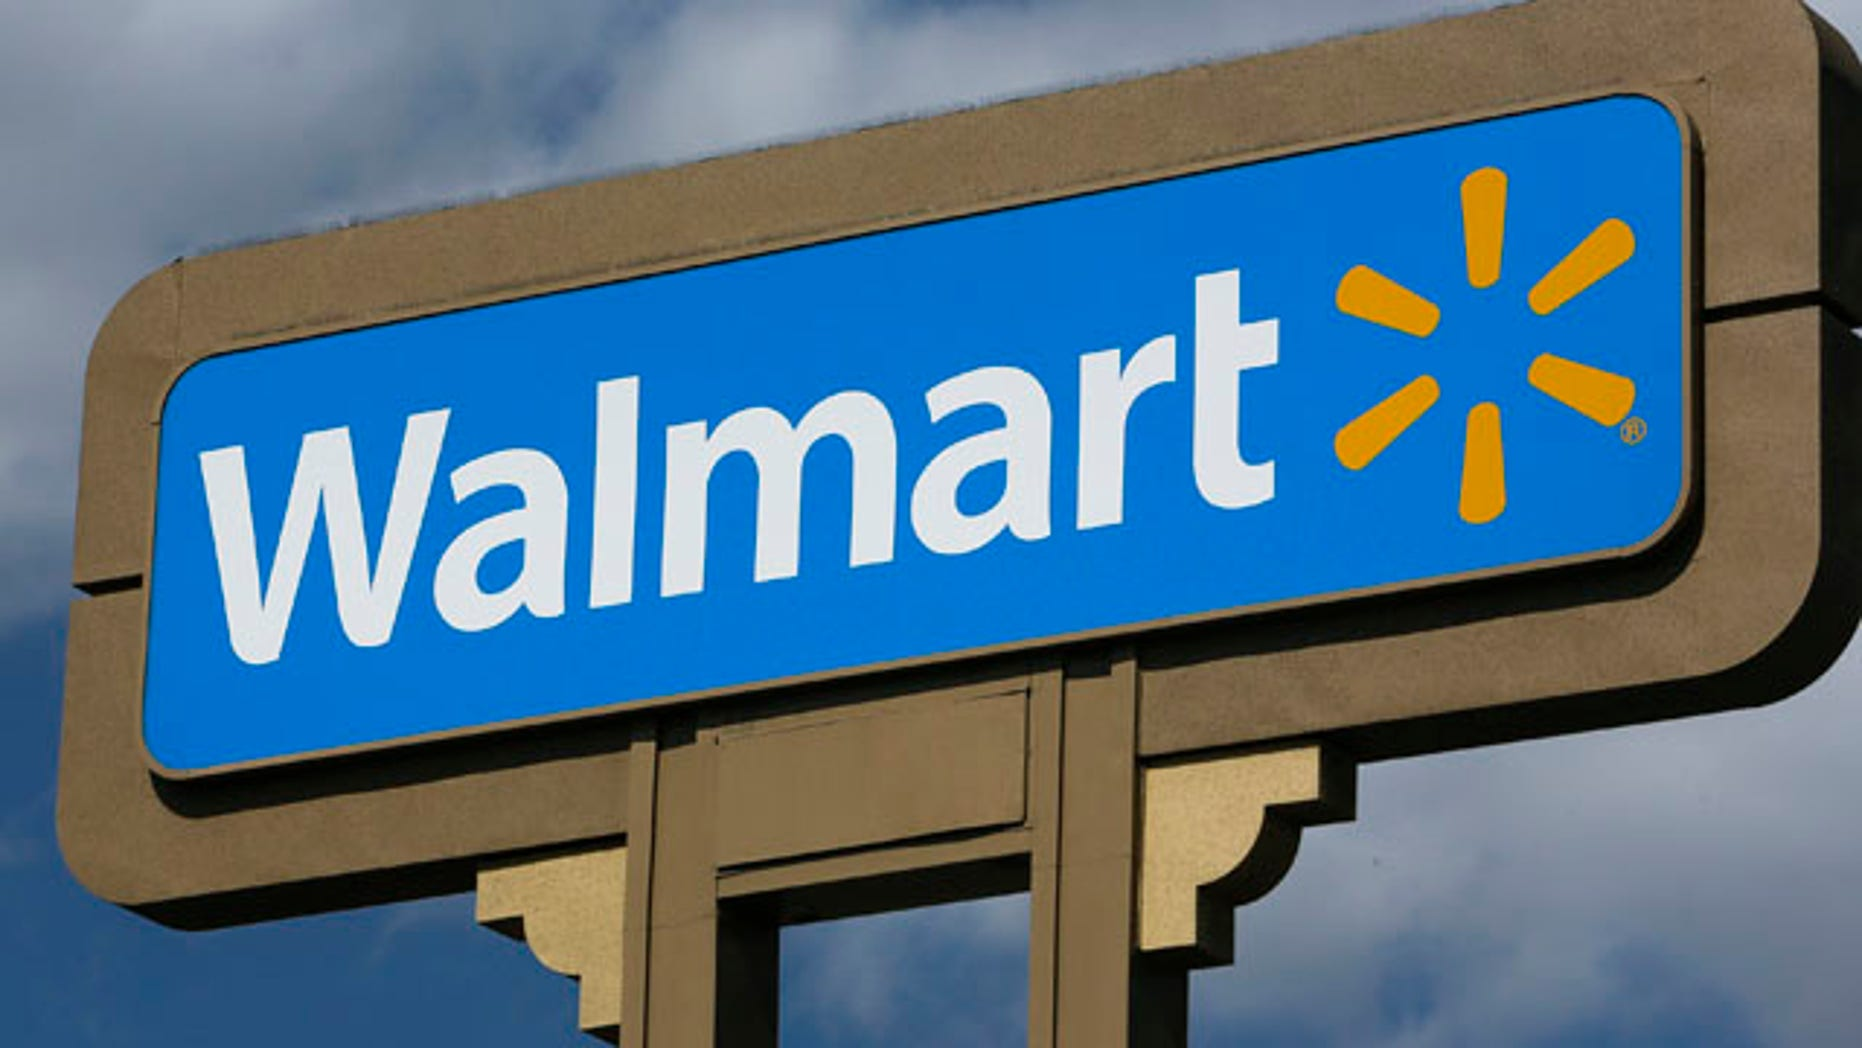 FILE - This May 28, 2013 file photo shows a sign outside a Wal-mart store in Duarte, Calif. (AP Photo/Damian Dovarganes, File)